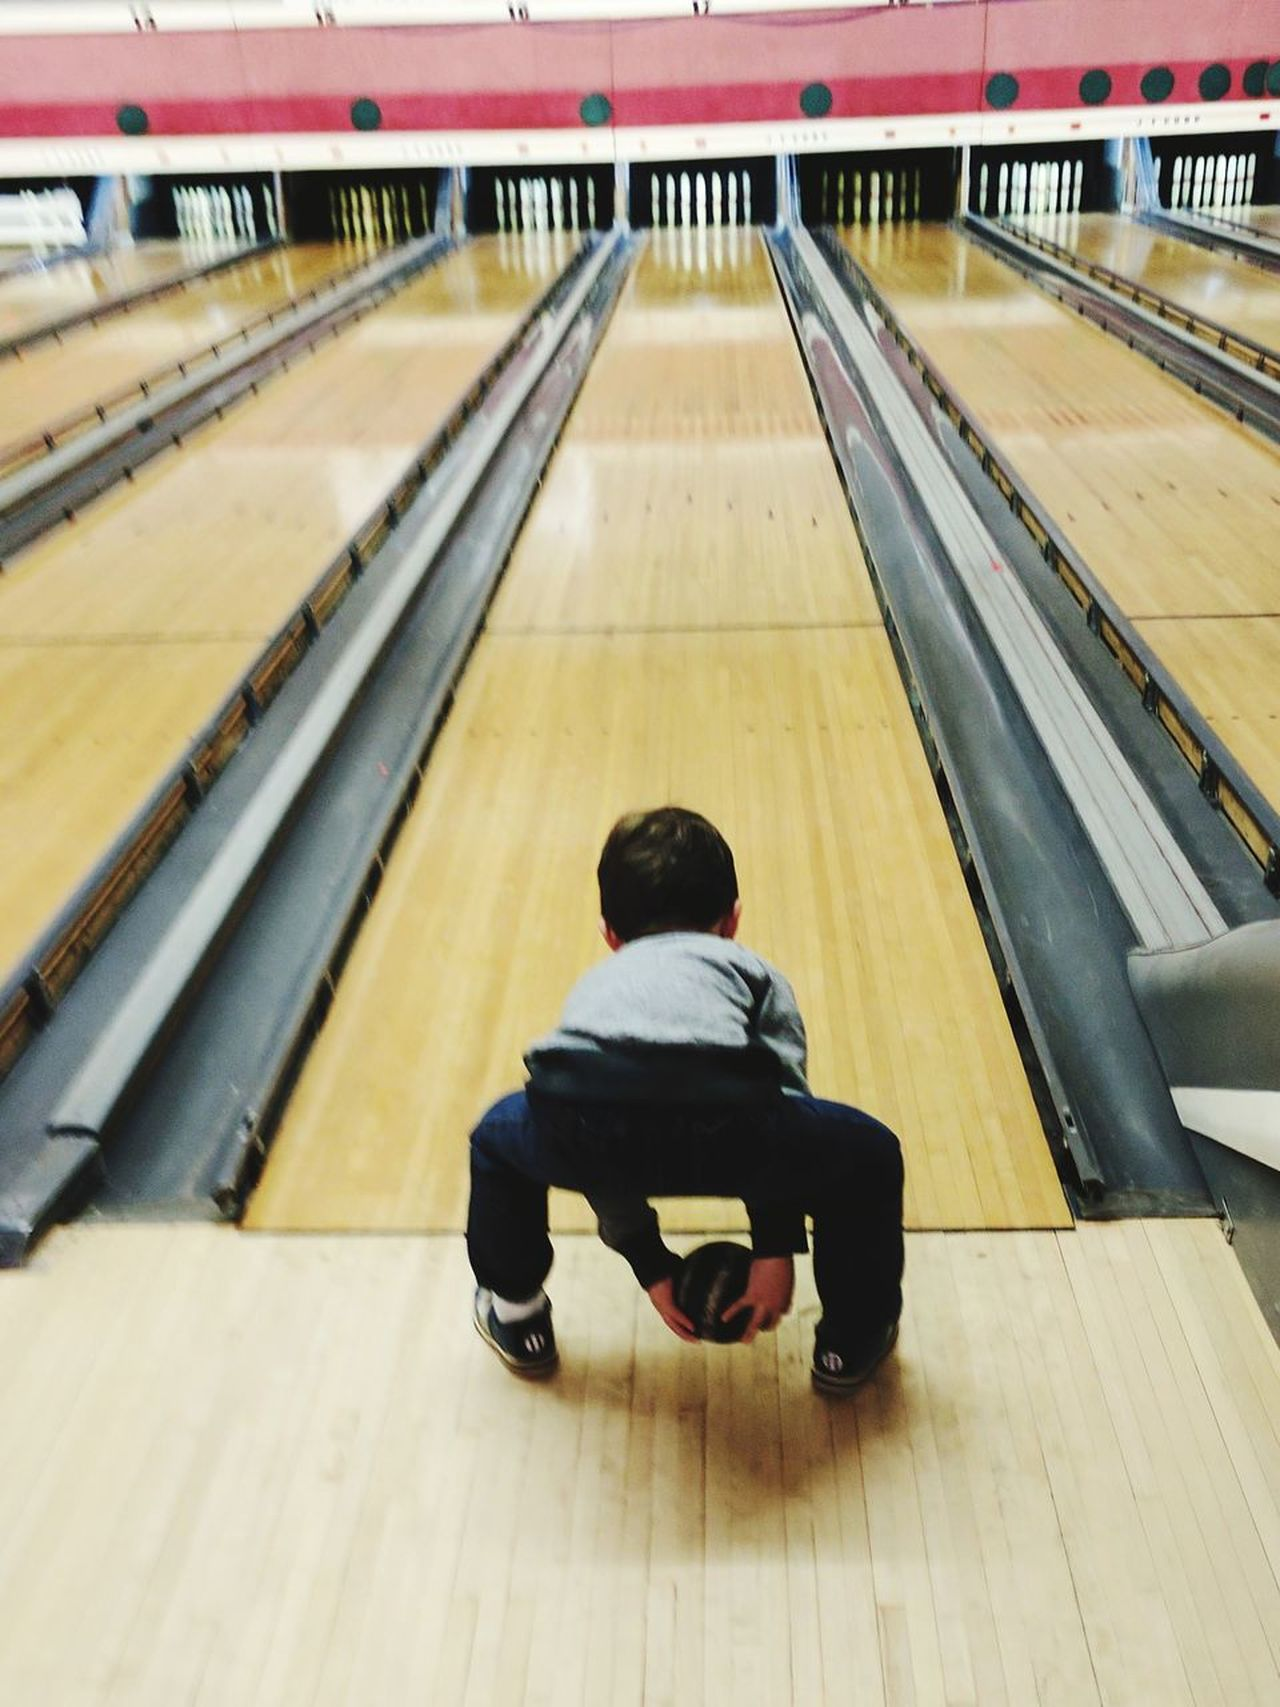 First time bowler. One Person Child Athlete Rear View People Full Length Bowling Alley Bowling Candlepin Bowling Boy Indoors  Day